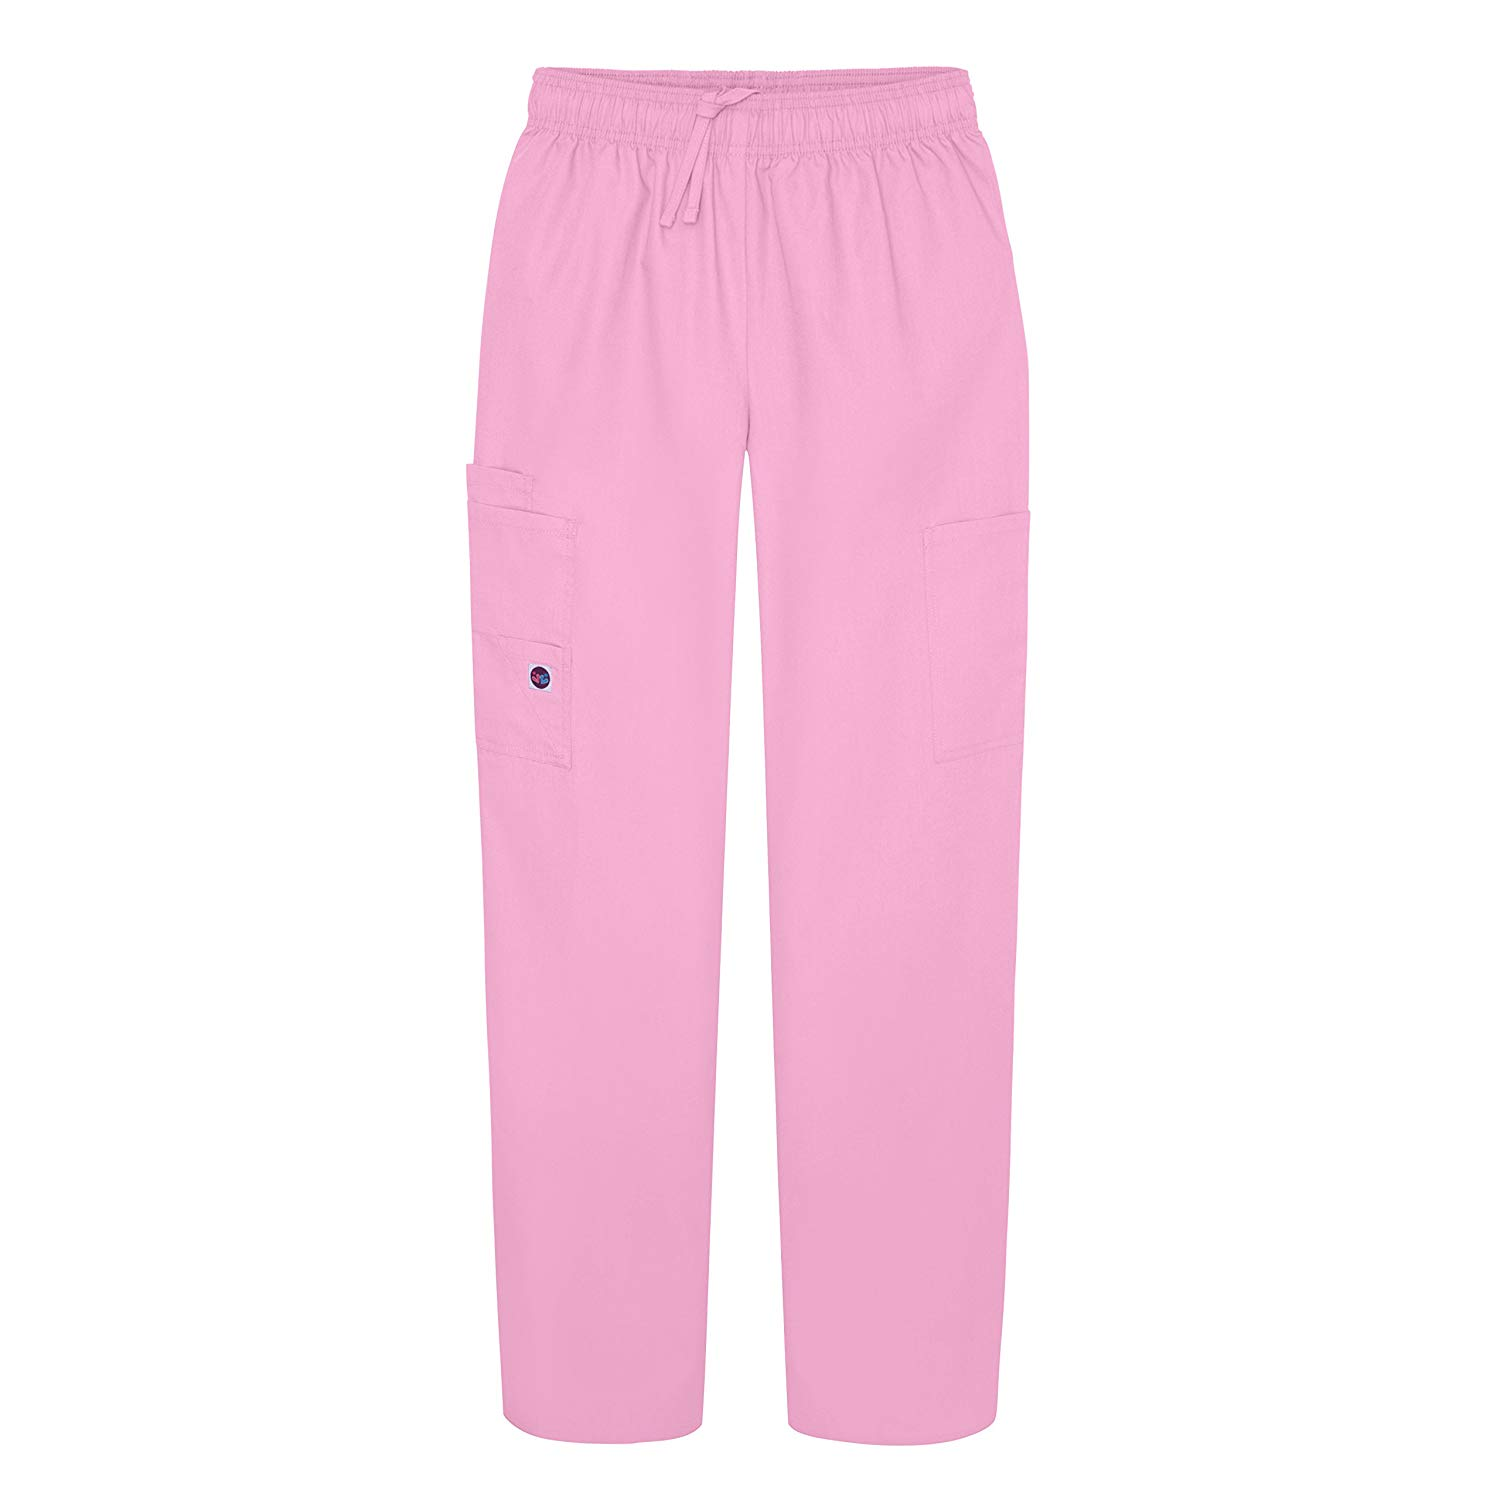 5 Pieces  Women's Scrubs Drawstring Cargo Pants (Available In 12 Colors) Cargo Pants  Overalls